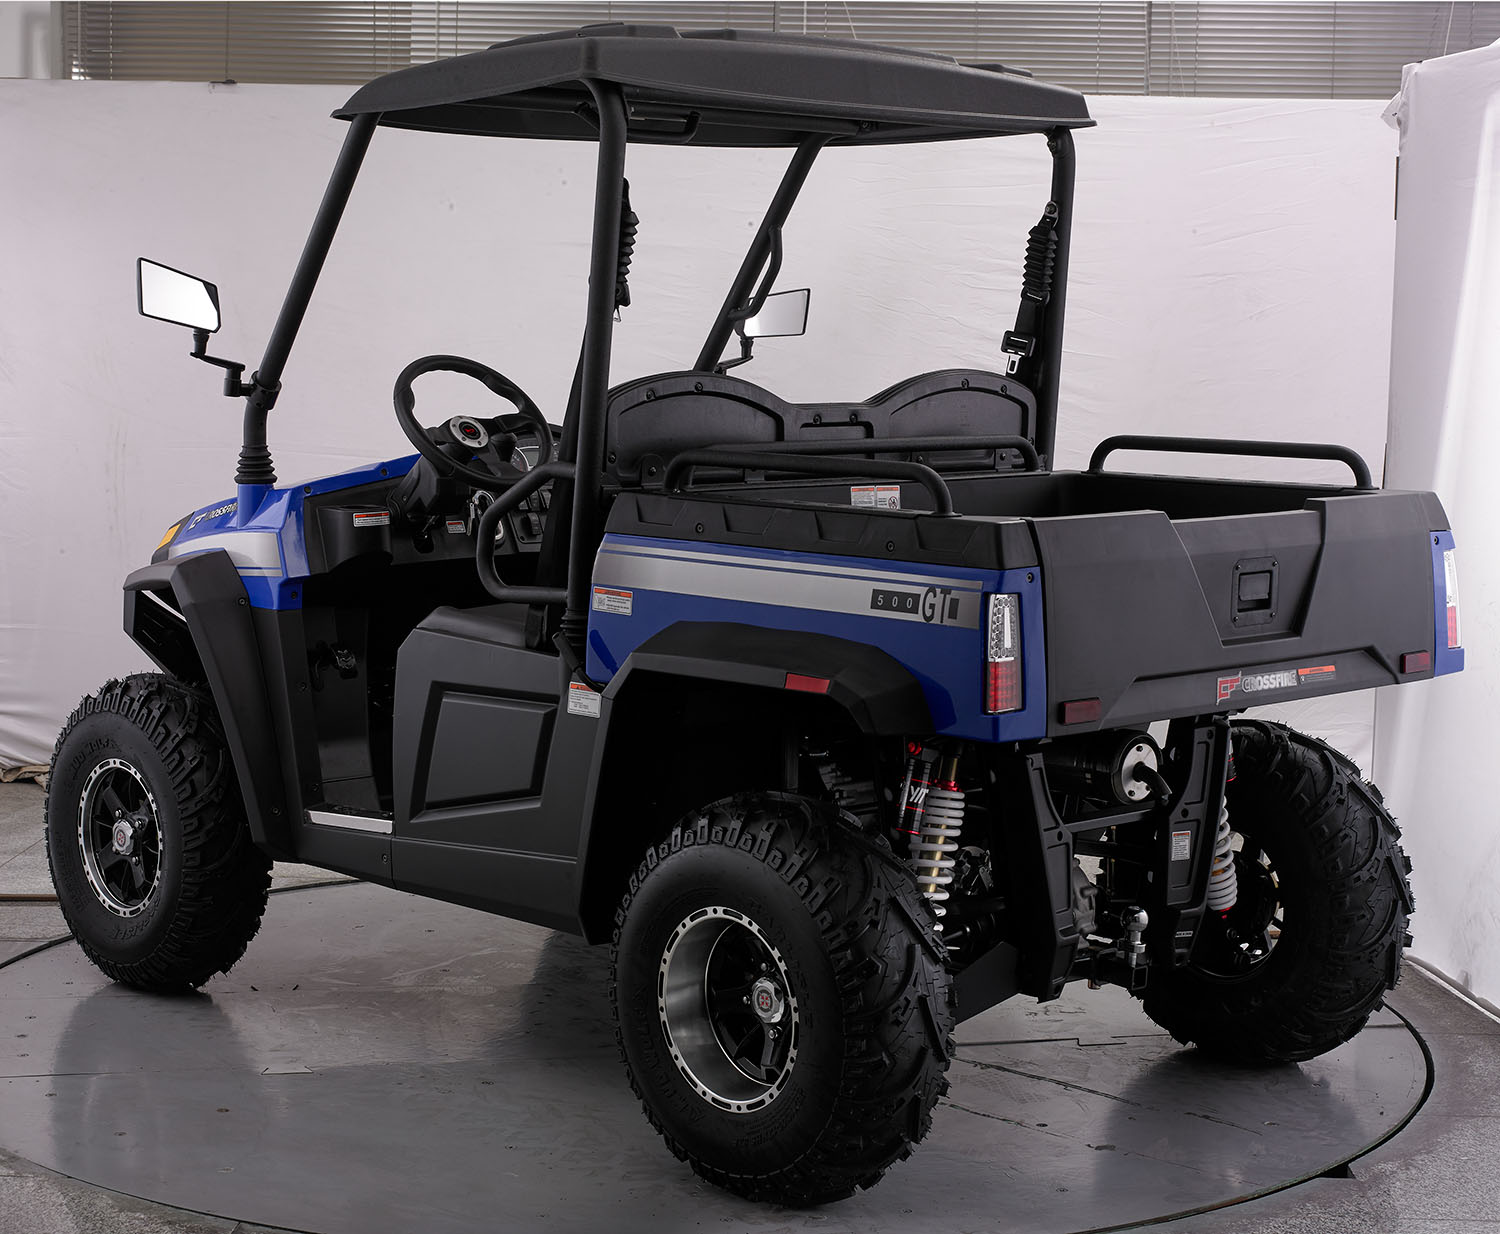 crossfire-500gt-atv-blue-back-side-2